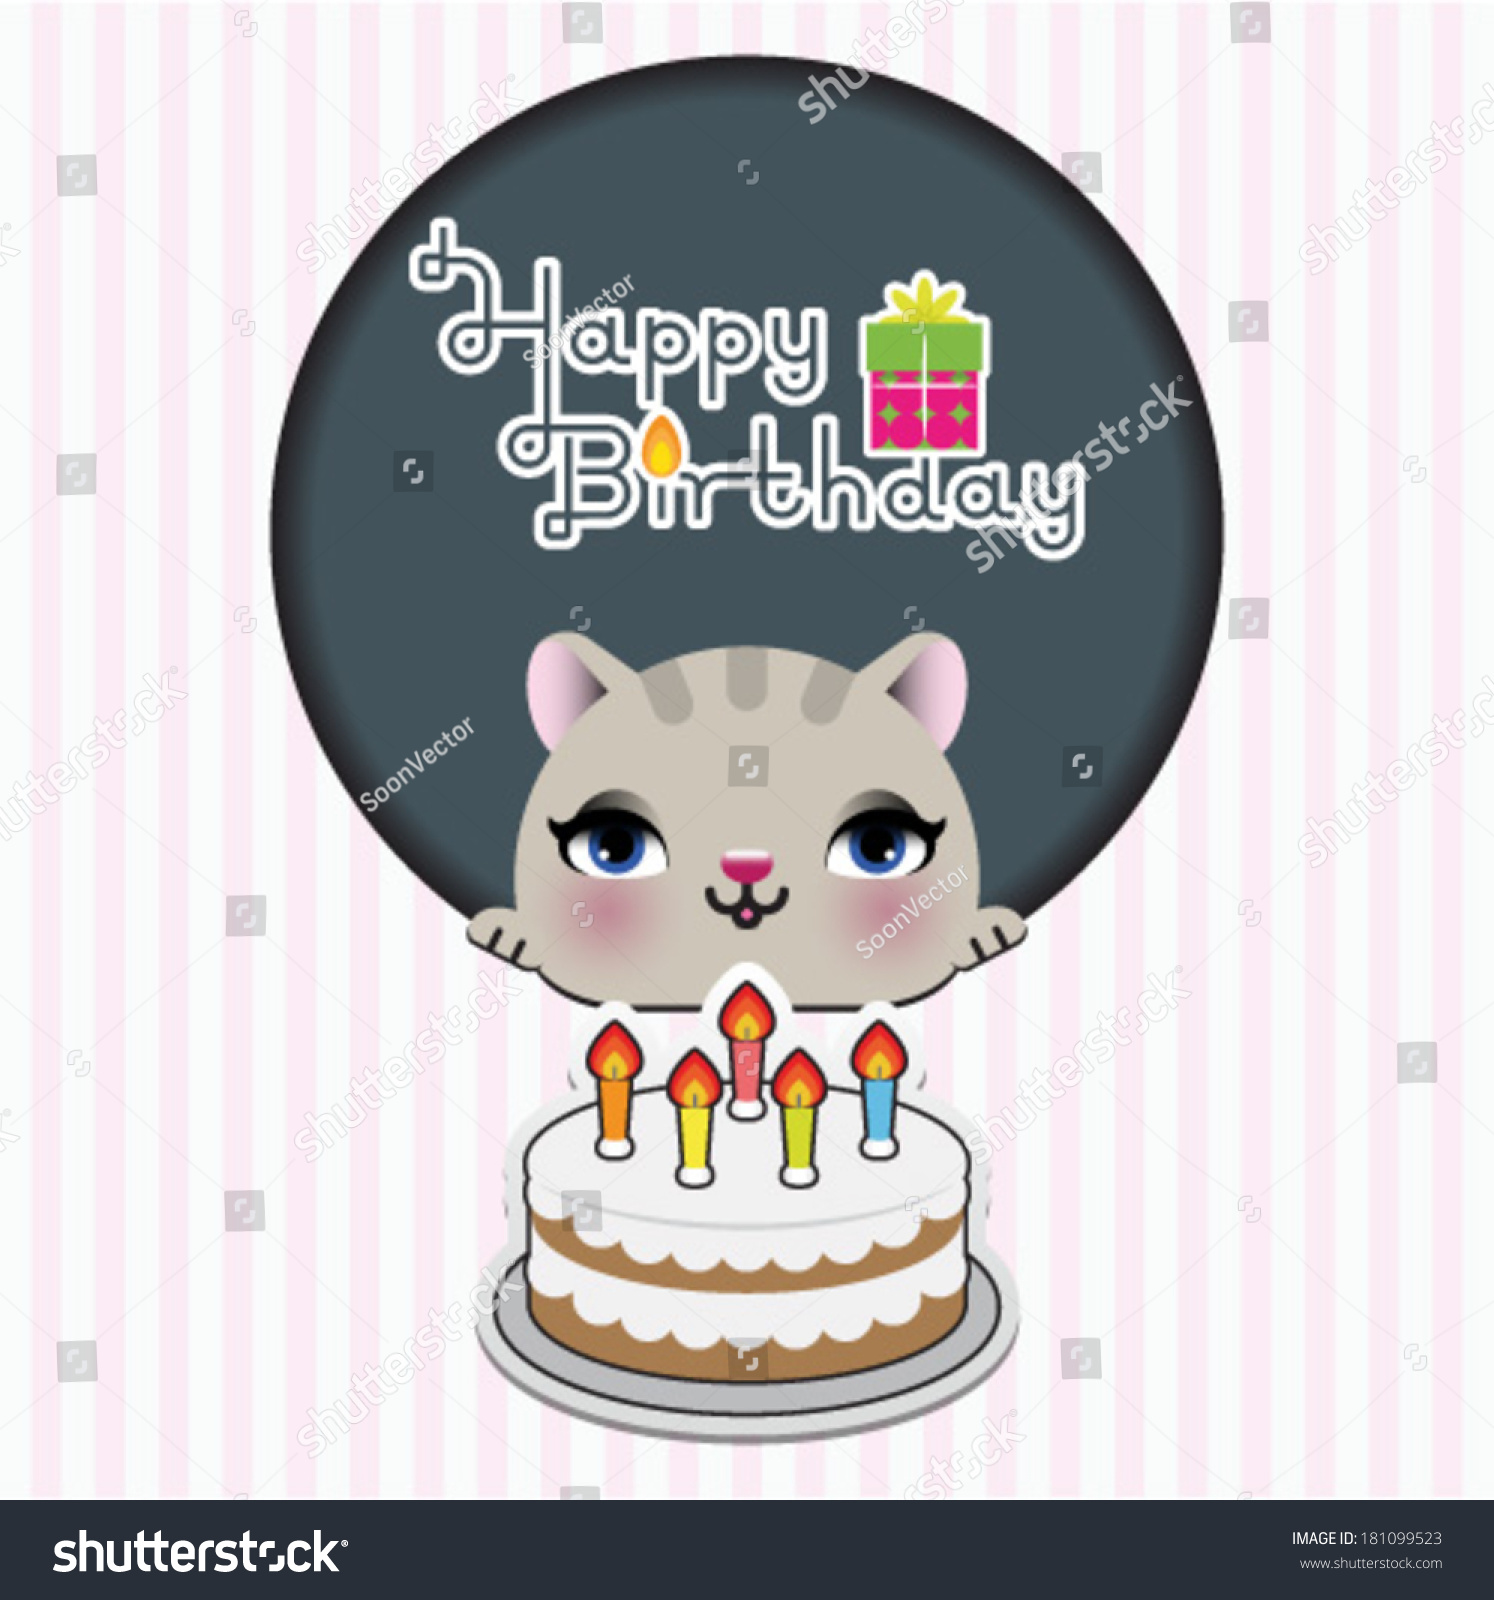 Best of elvis birthday card pictures eccleshallfc the smiths birthday card gallery free birthday cards bookmarktalkfo Choice Image